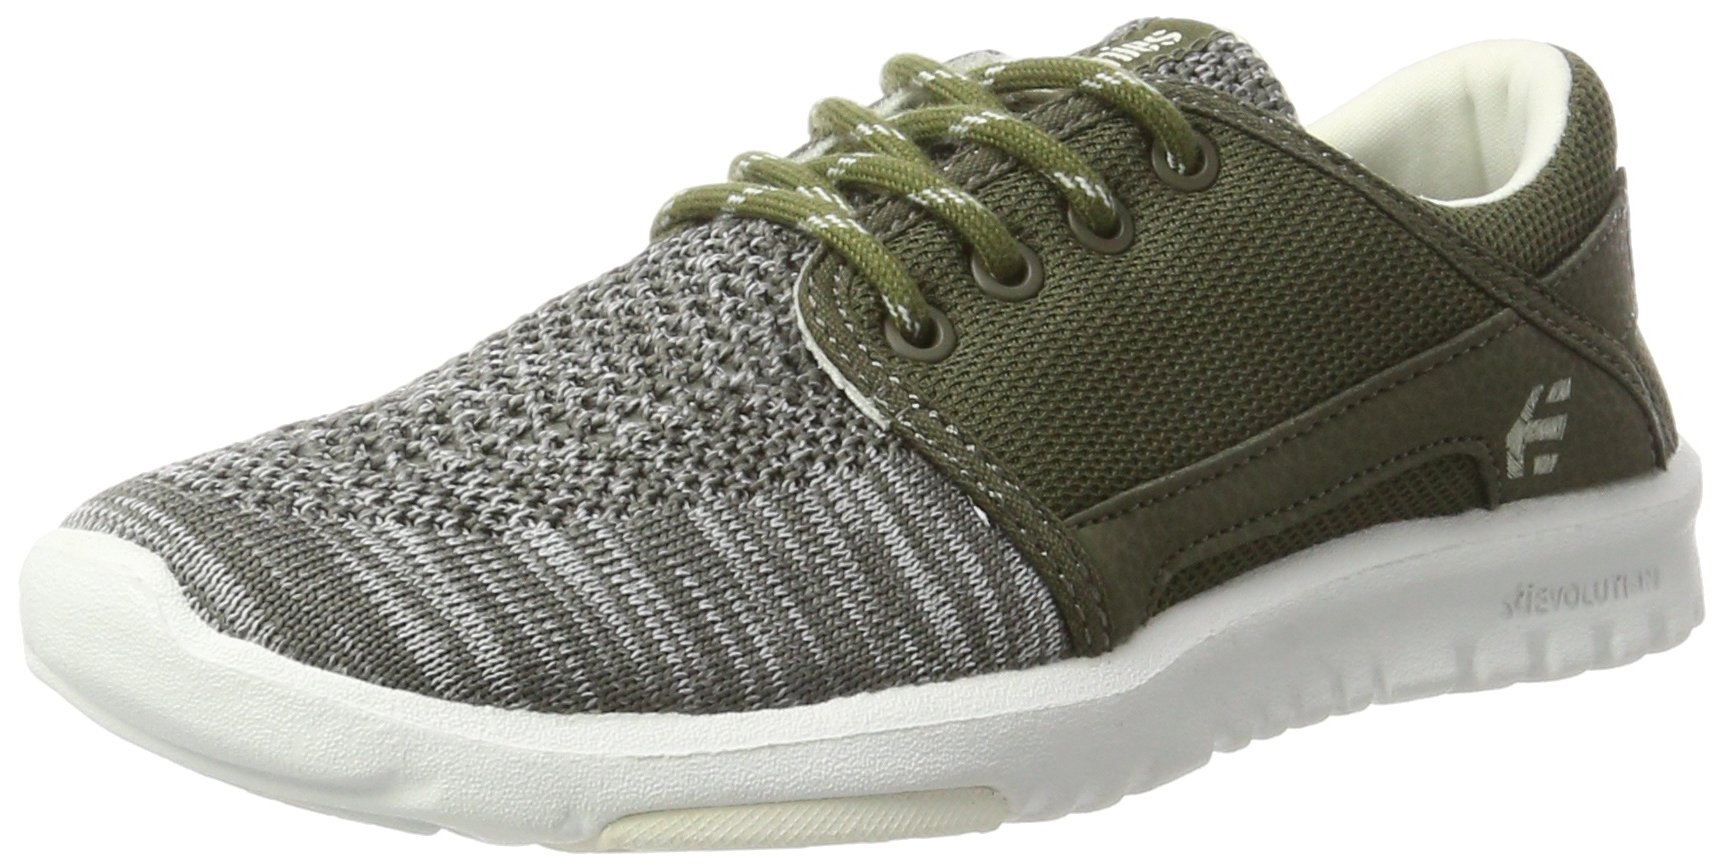 Etnies Womens Women's Scout YB W's Skate Shoe, Olive/White, 8 Medium US